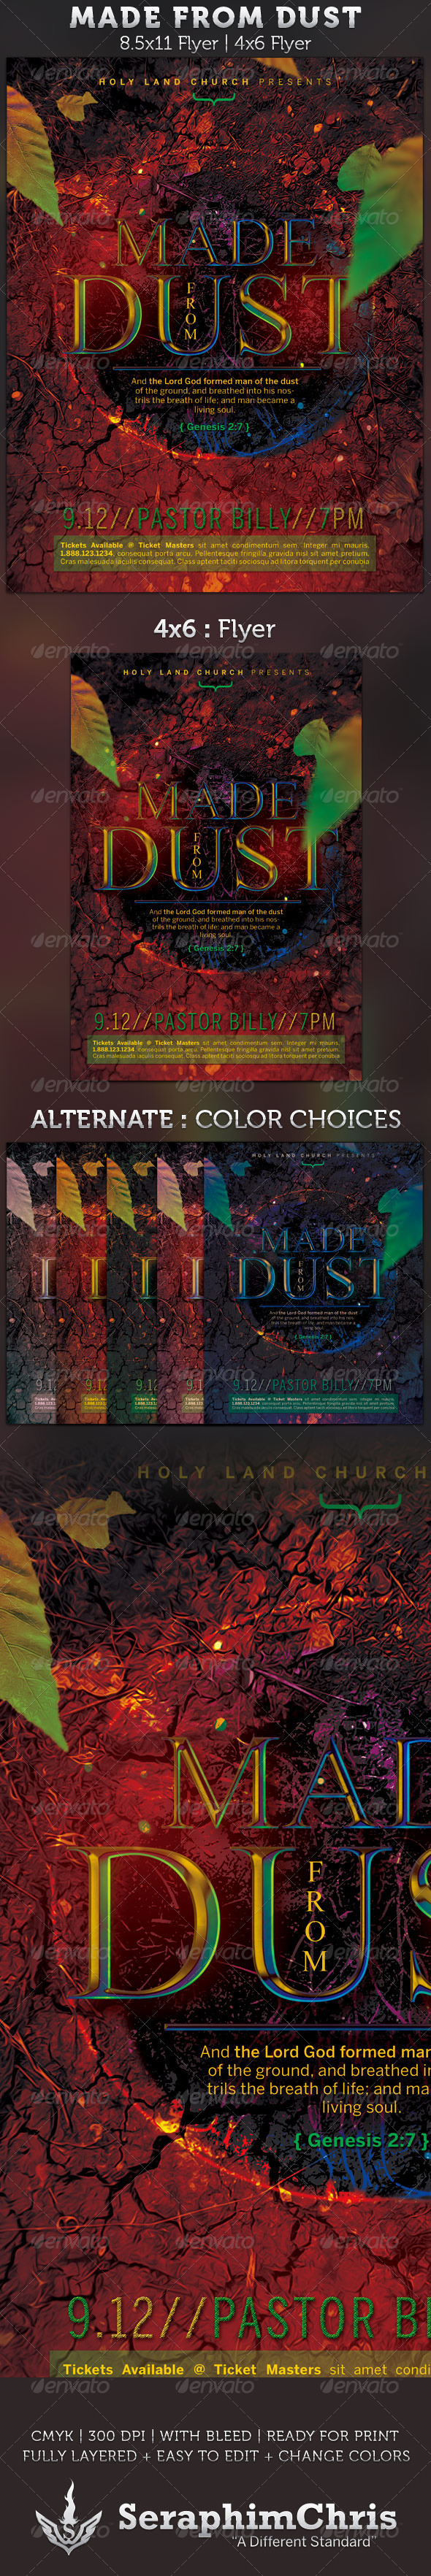 Made From Dust Church Flyer Template